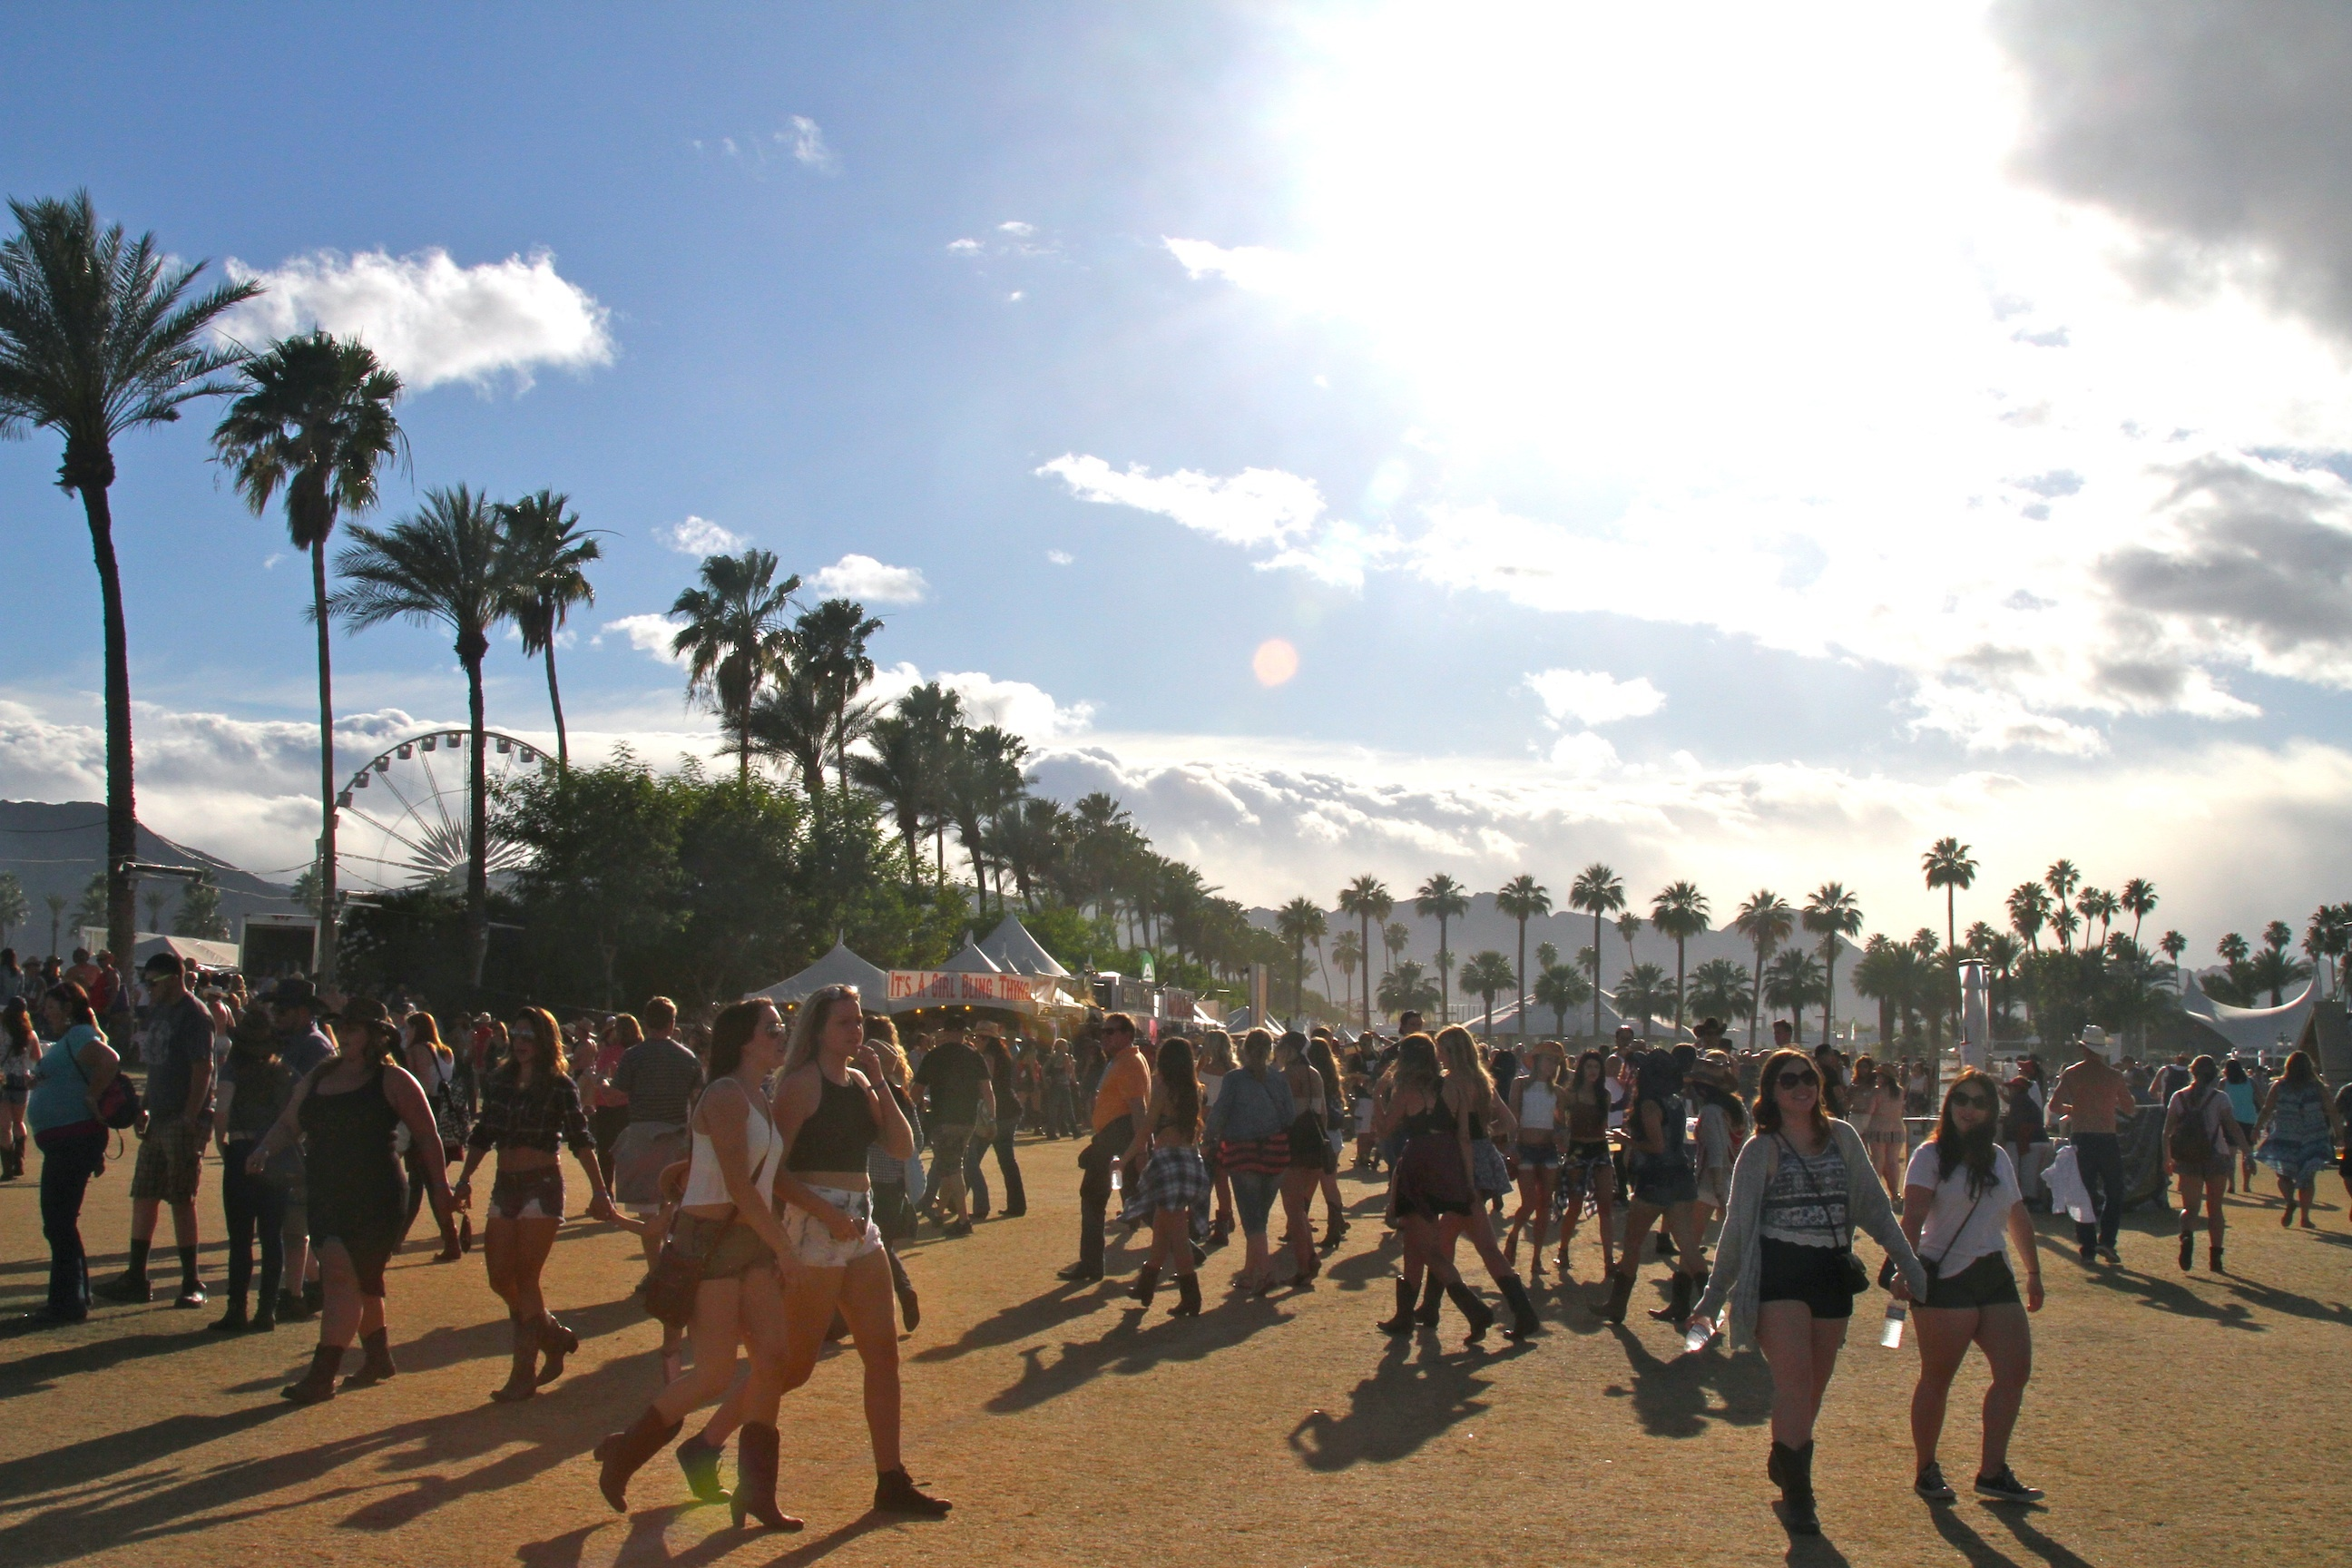 10 things I learned at Stagecoach